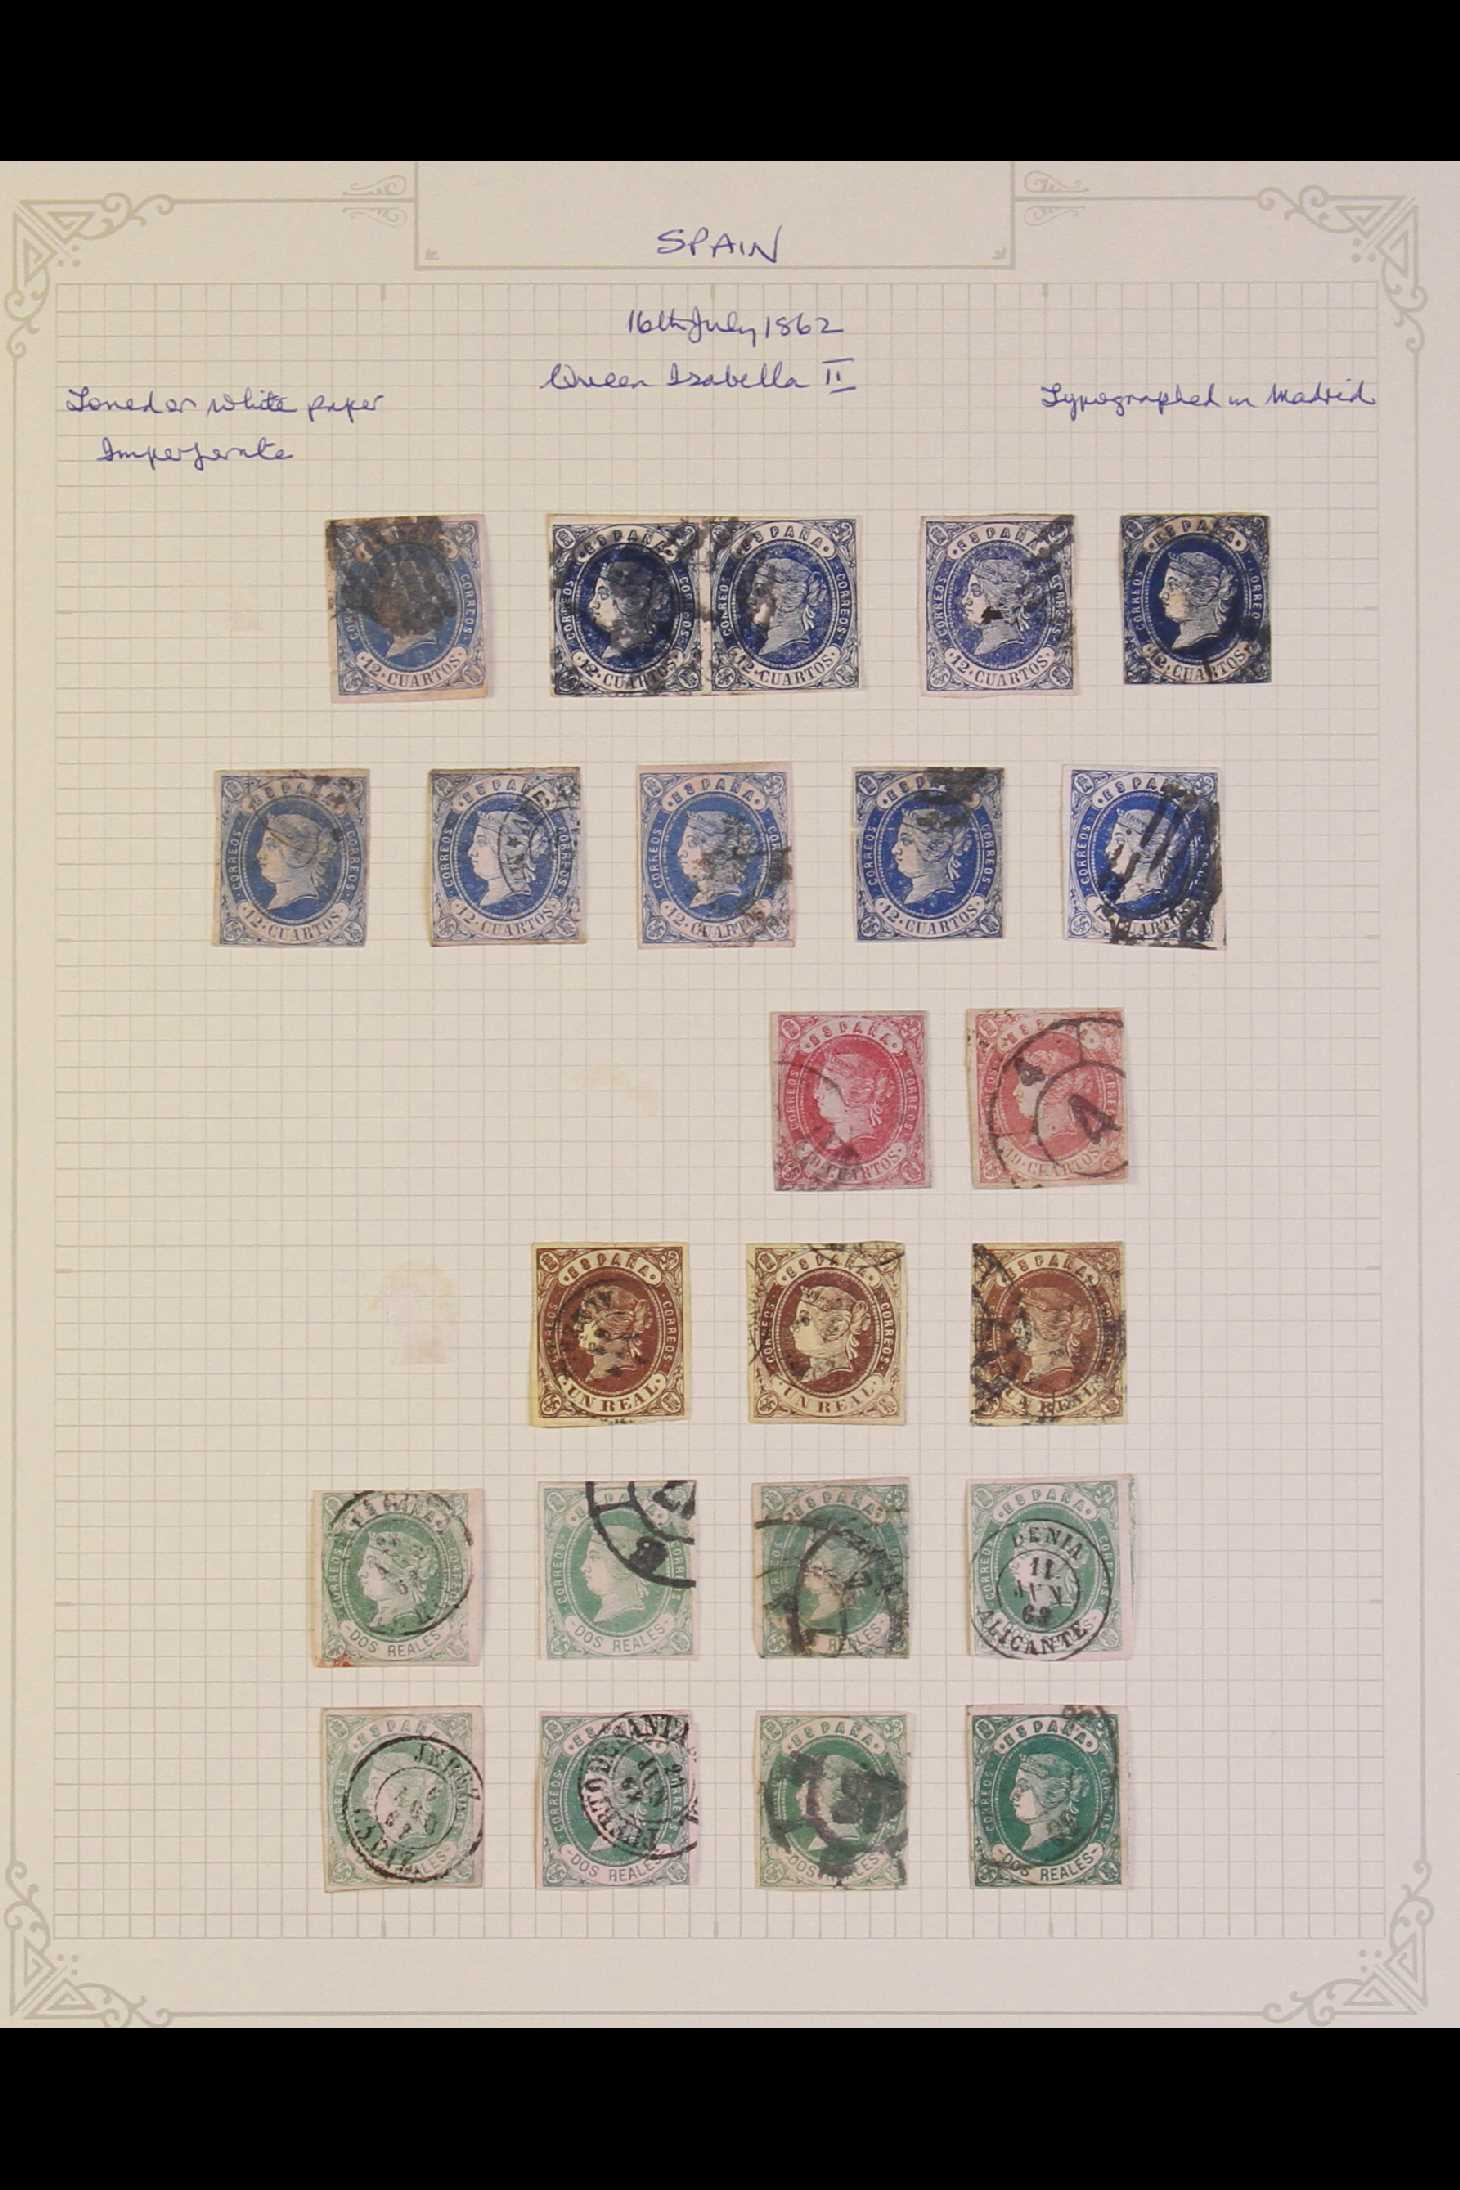 SPAIN 1862 Isabella range with2c blue x4, 4c brown on brown x16, 12c blue on rose x10, 19c - Image 2 of 2